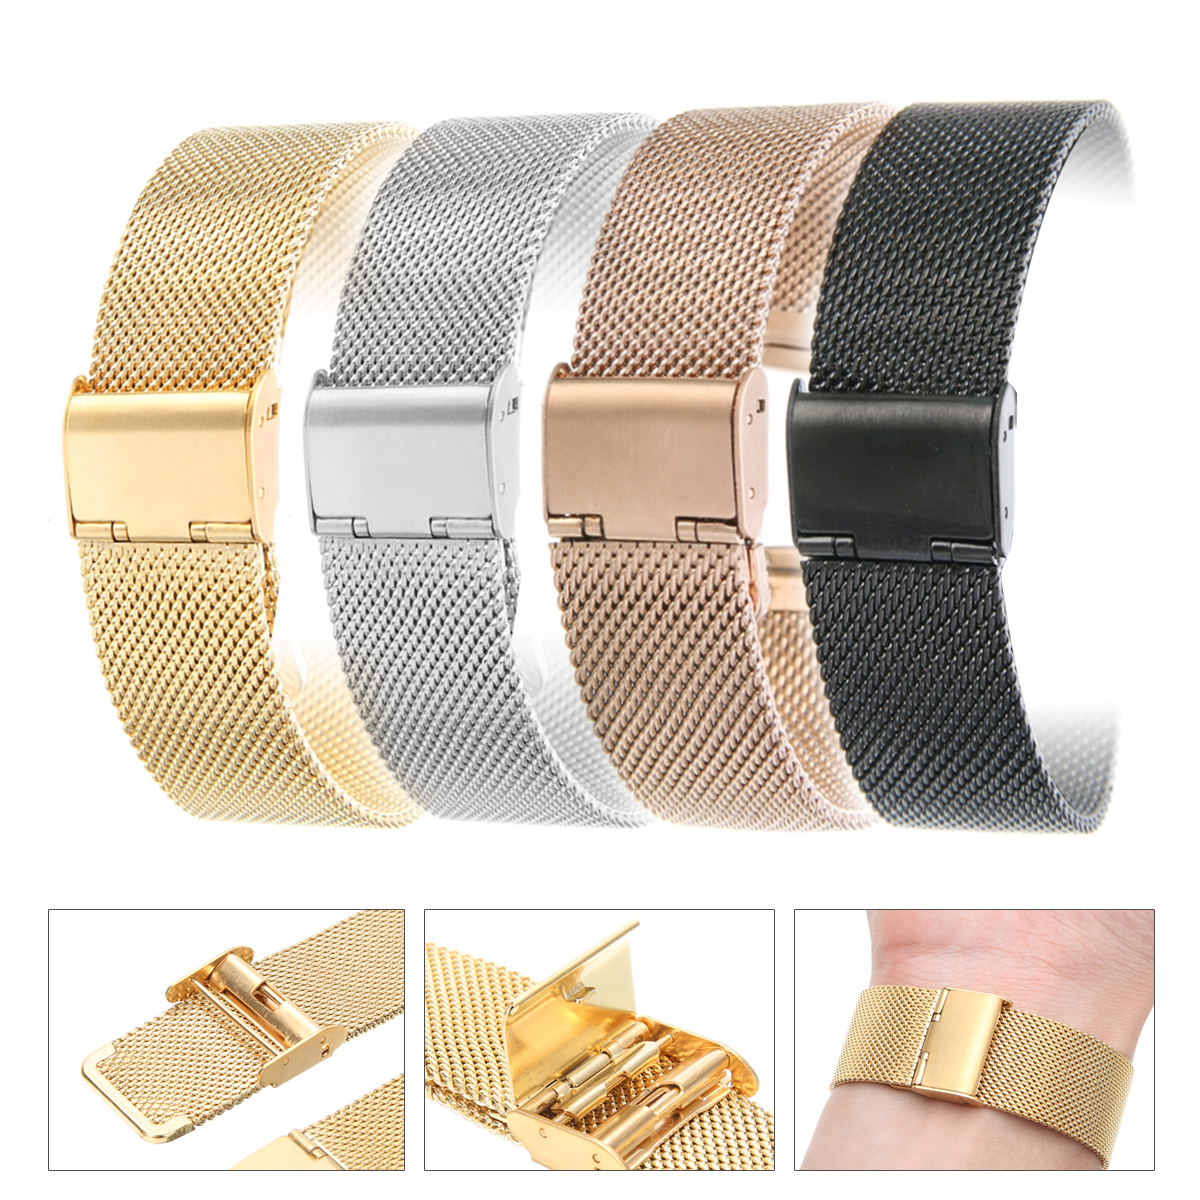 12mm/14mm/16mm/18mm/20mm/22mm/24mm Stainless Steel Watch Strap Straight End Bracelet Mesh Buckle Watch Band 4 Colors Shellhard new mens rose gold watch band 16mm 18mm 20mm 22mm 24mm silver black stainless steel watch band strap straight end bracelet